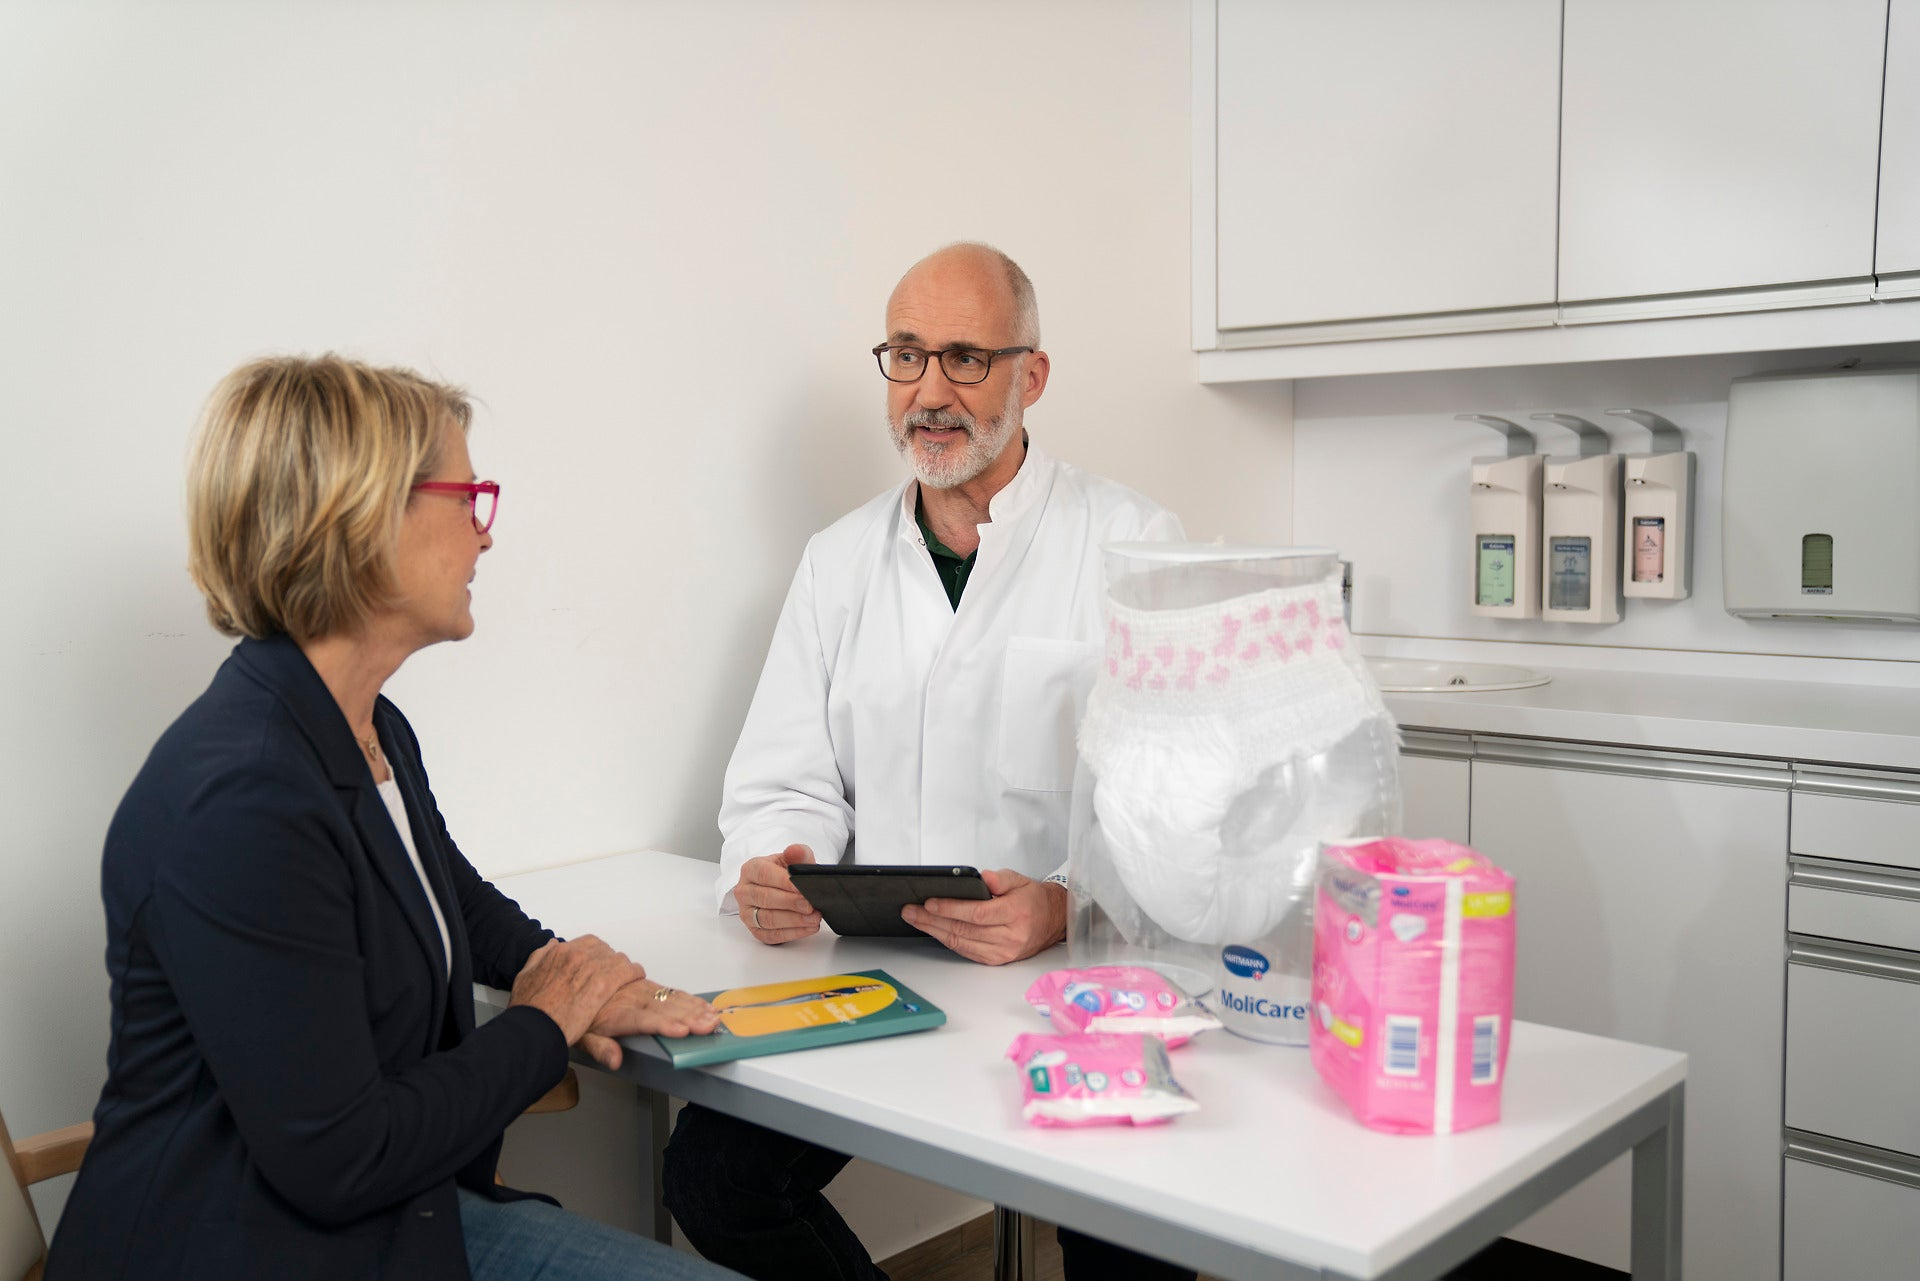 How to choose the right treatment for you